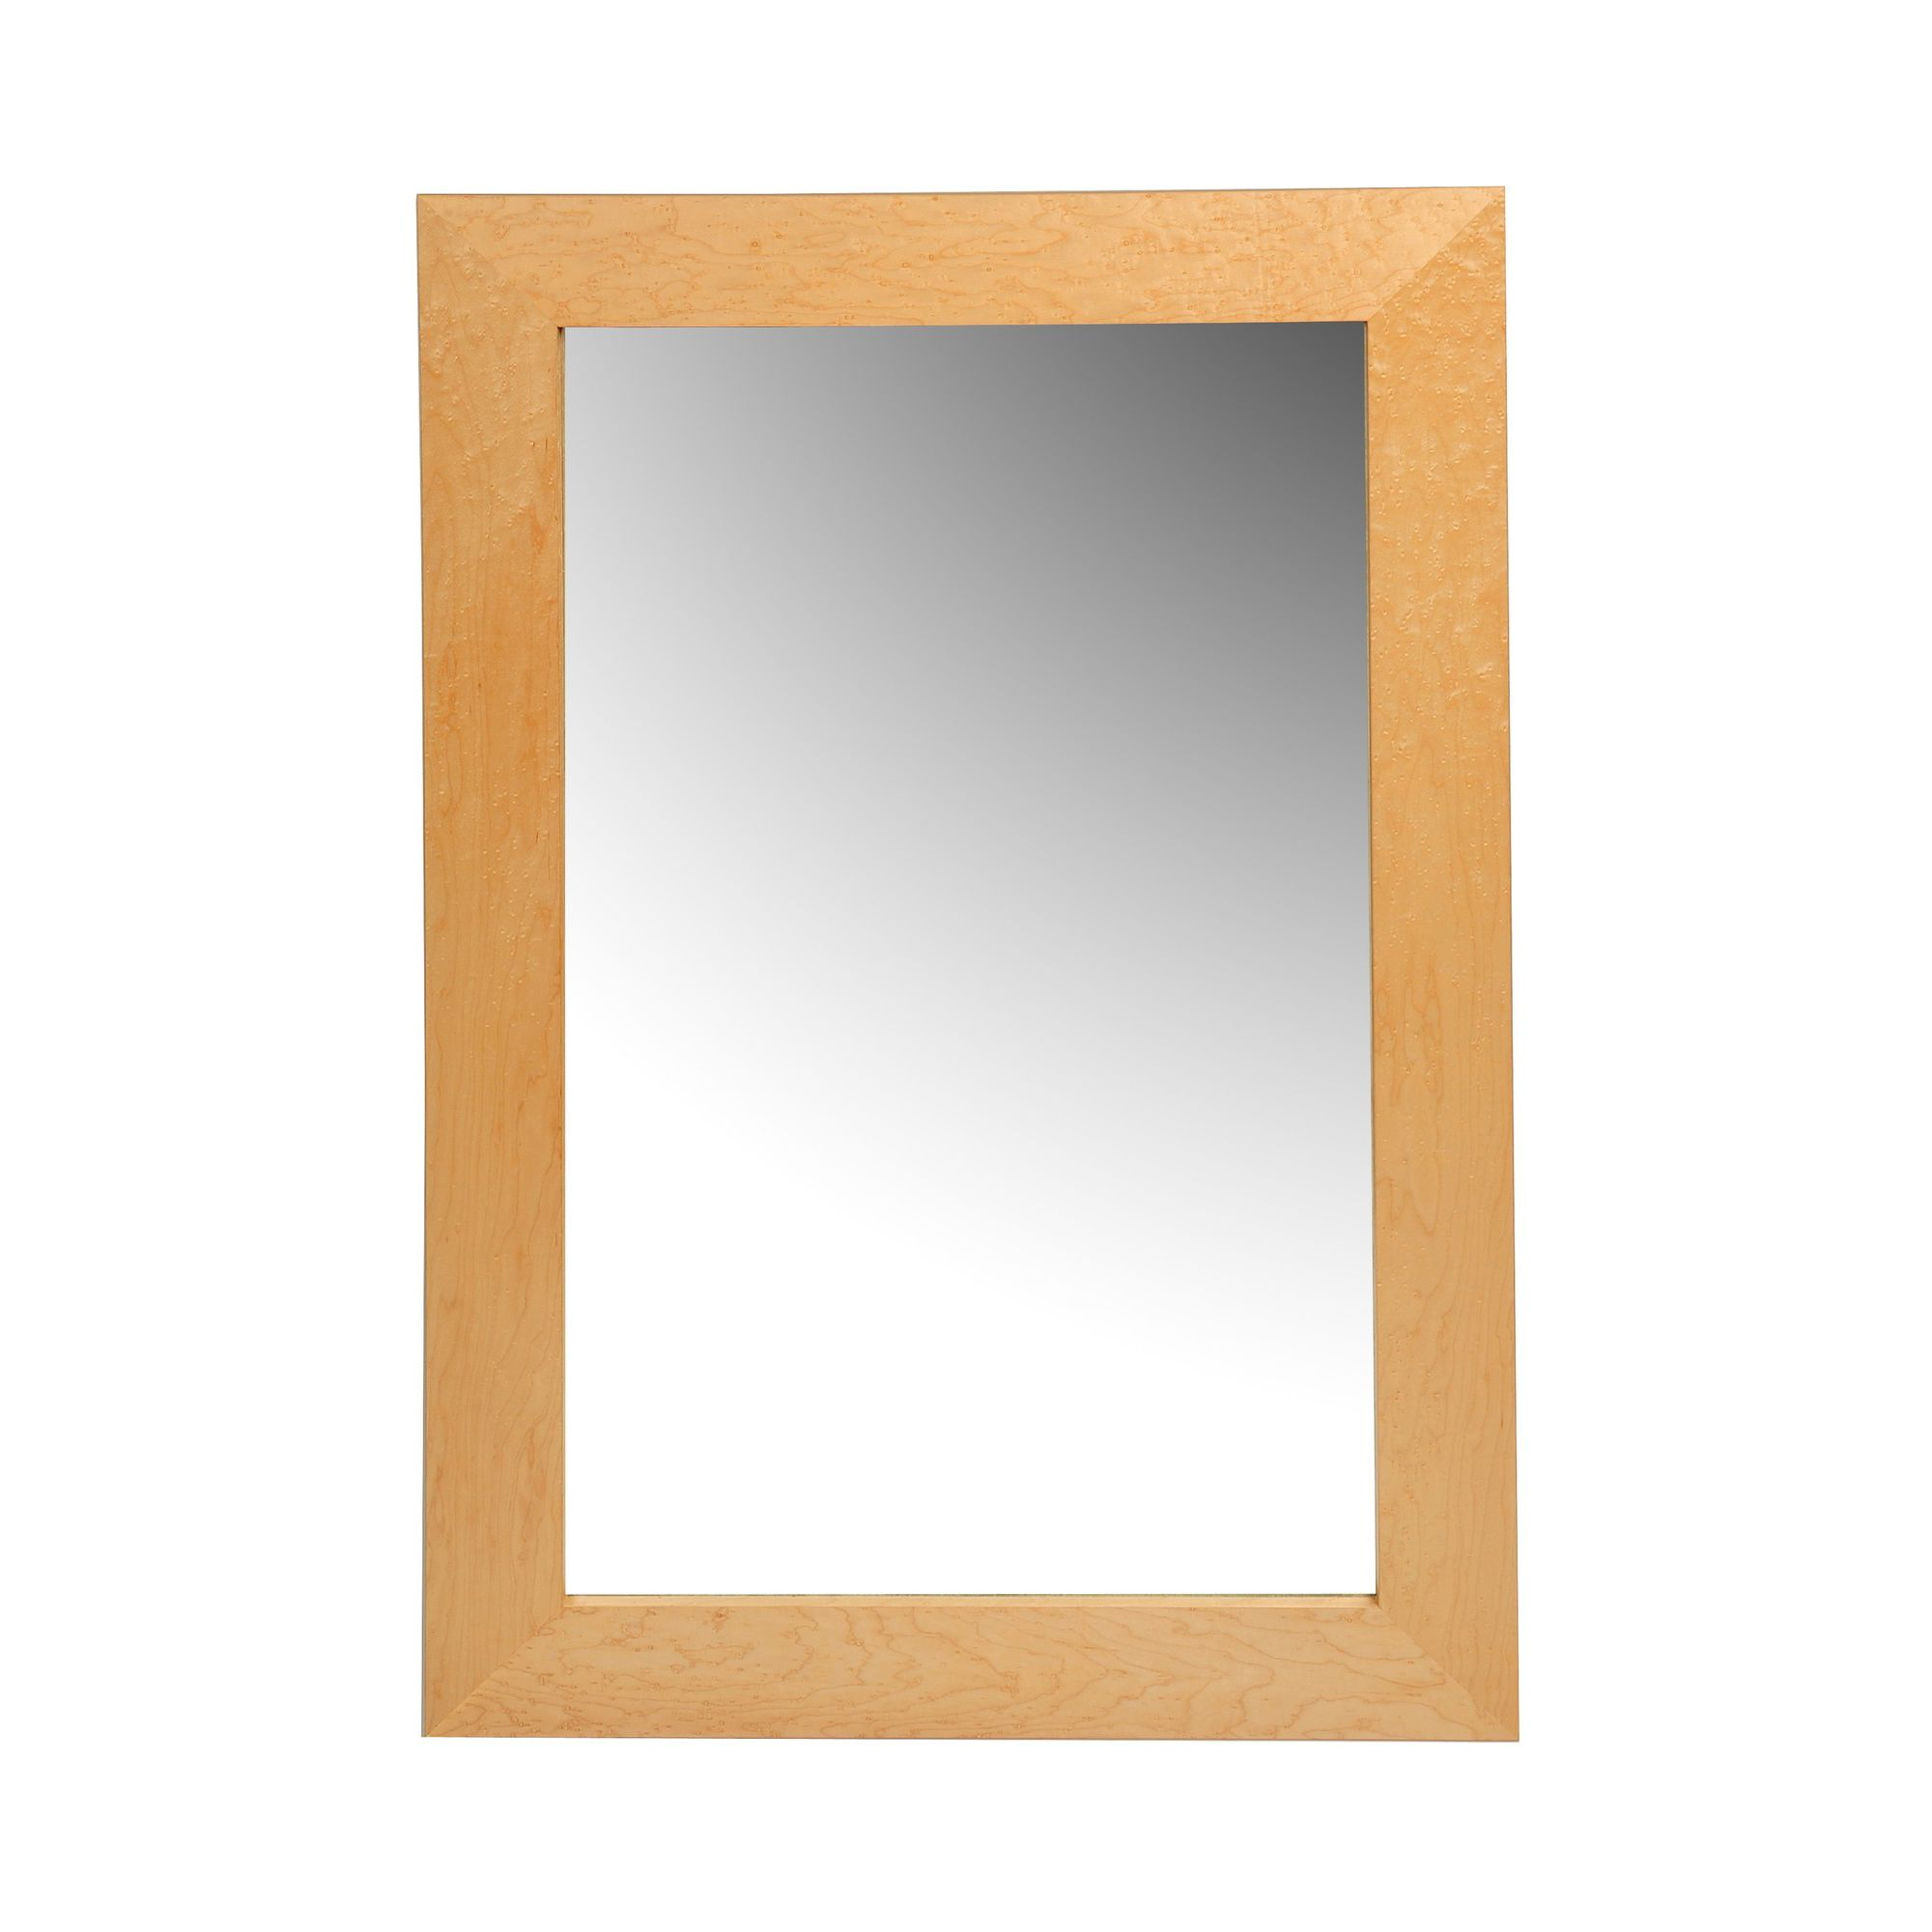 Trefurn Birdseye Mirror at Tesco Direct